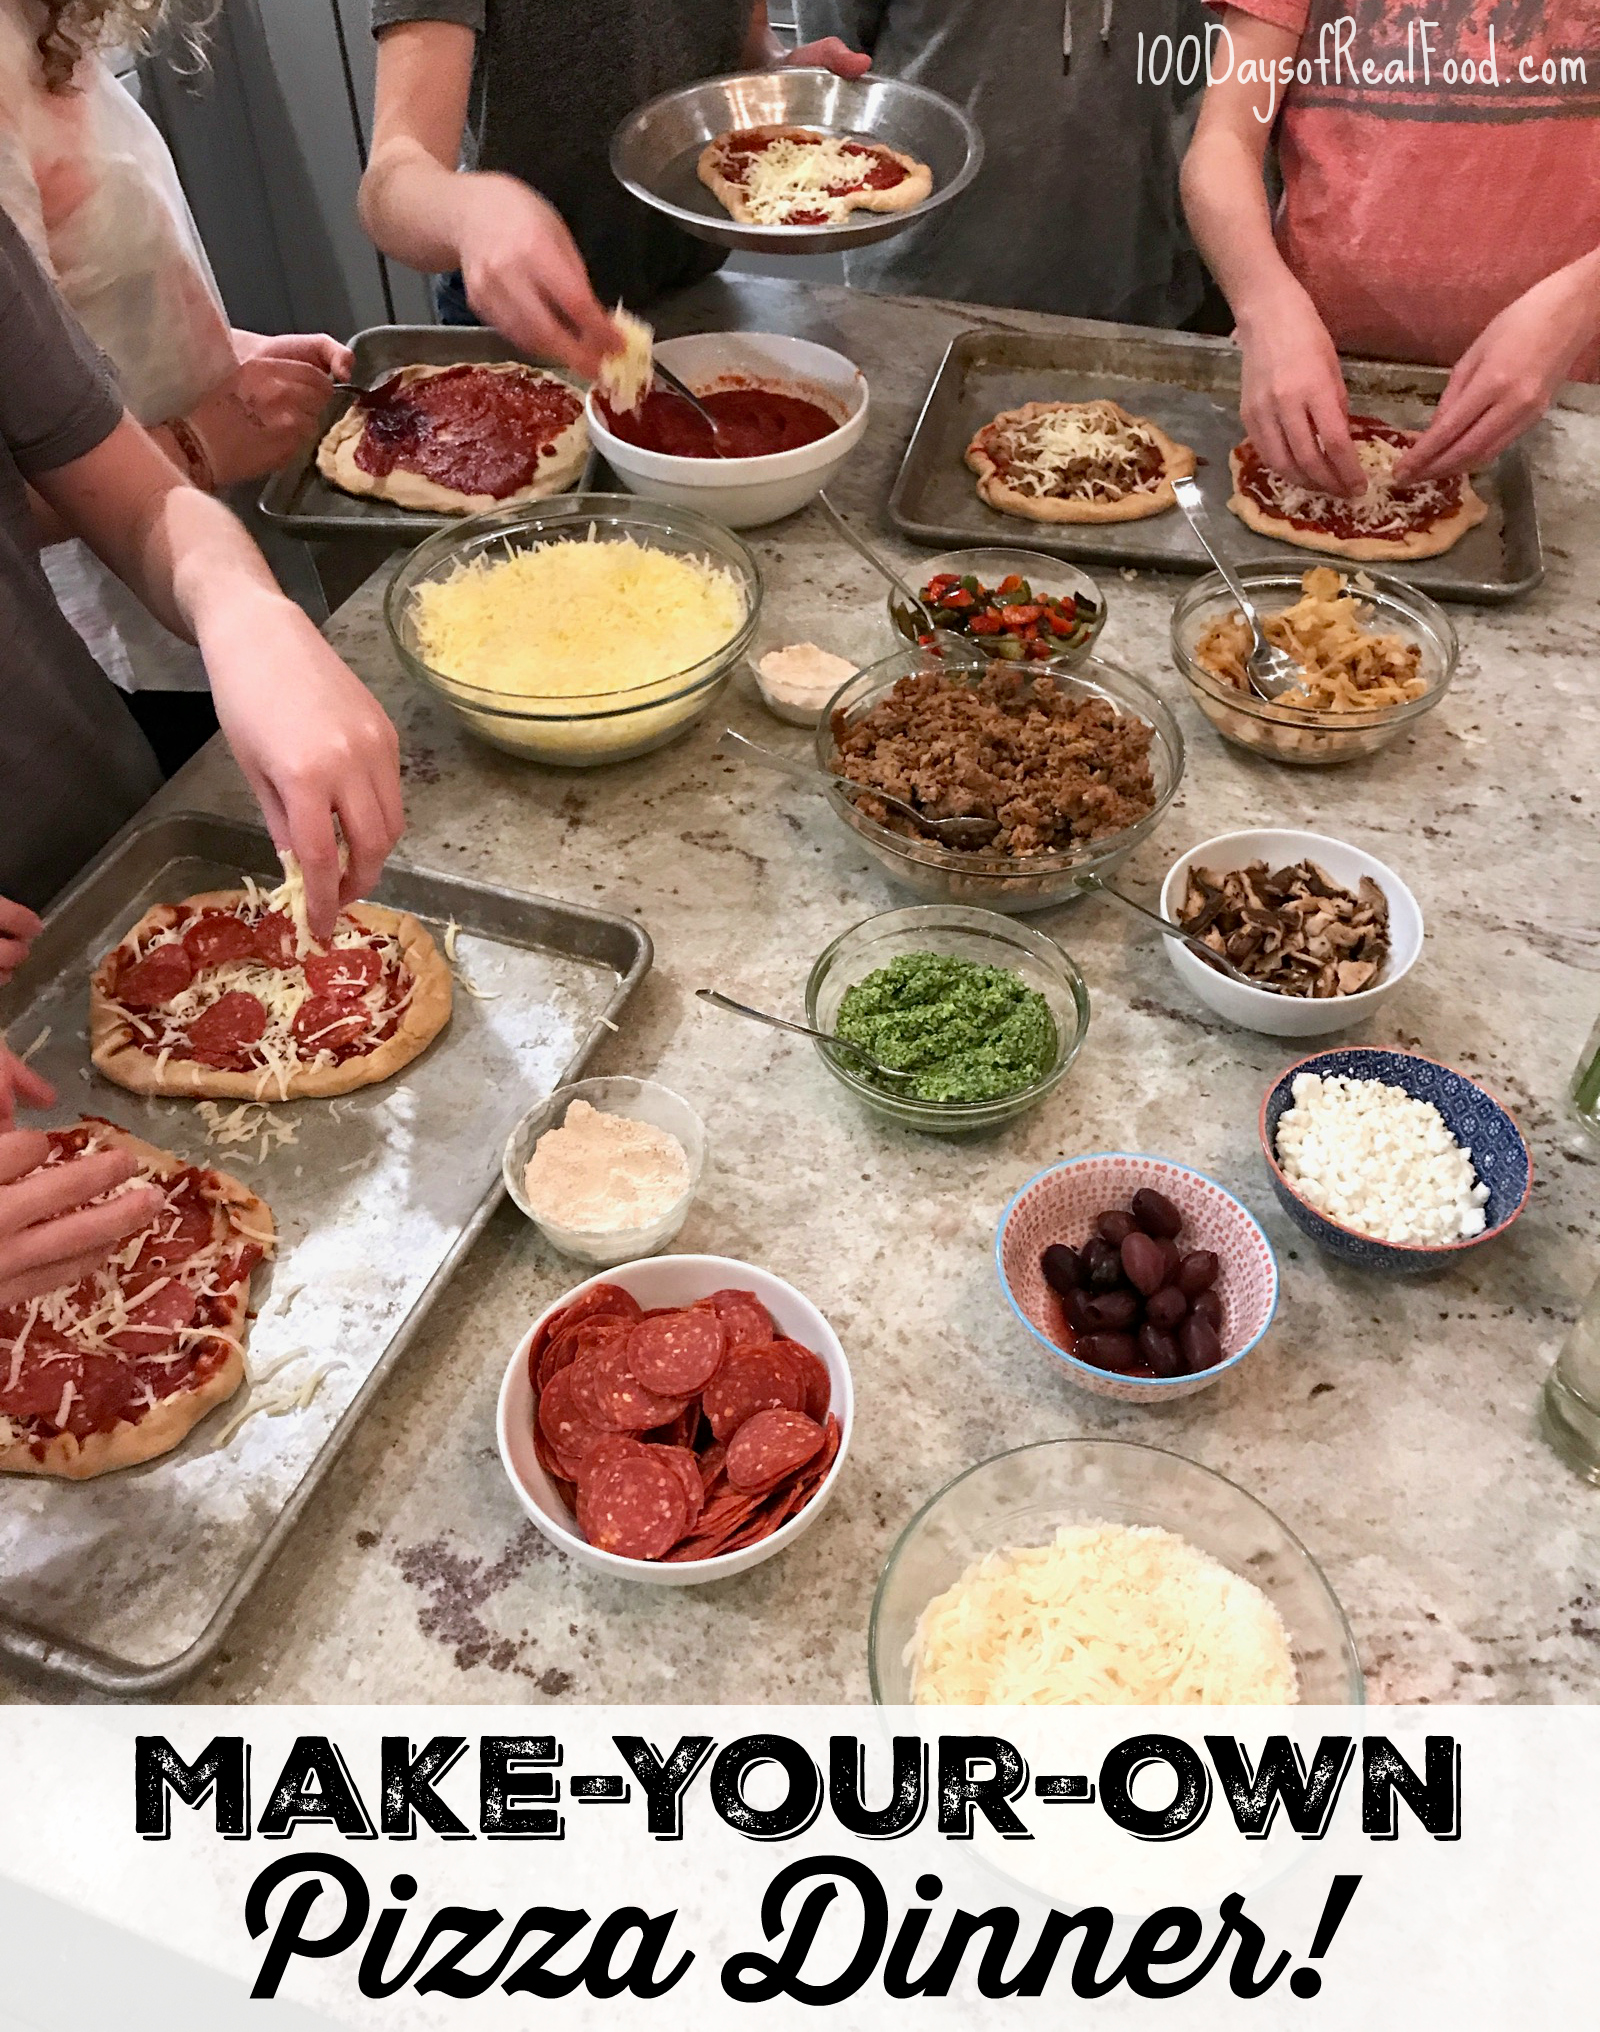 Want to know how to make a real Italian pizza?The very best way is to get an after-hours tutorial from the chefs at one of Rome's finest shopnow-62mfbrnp.ga if you aren't going to be in Rome any time soon, your next best option is to check out this recipe from the Walks of Italy crew.